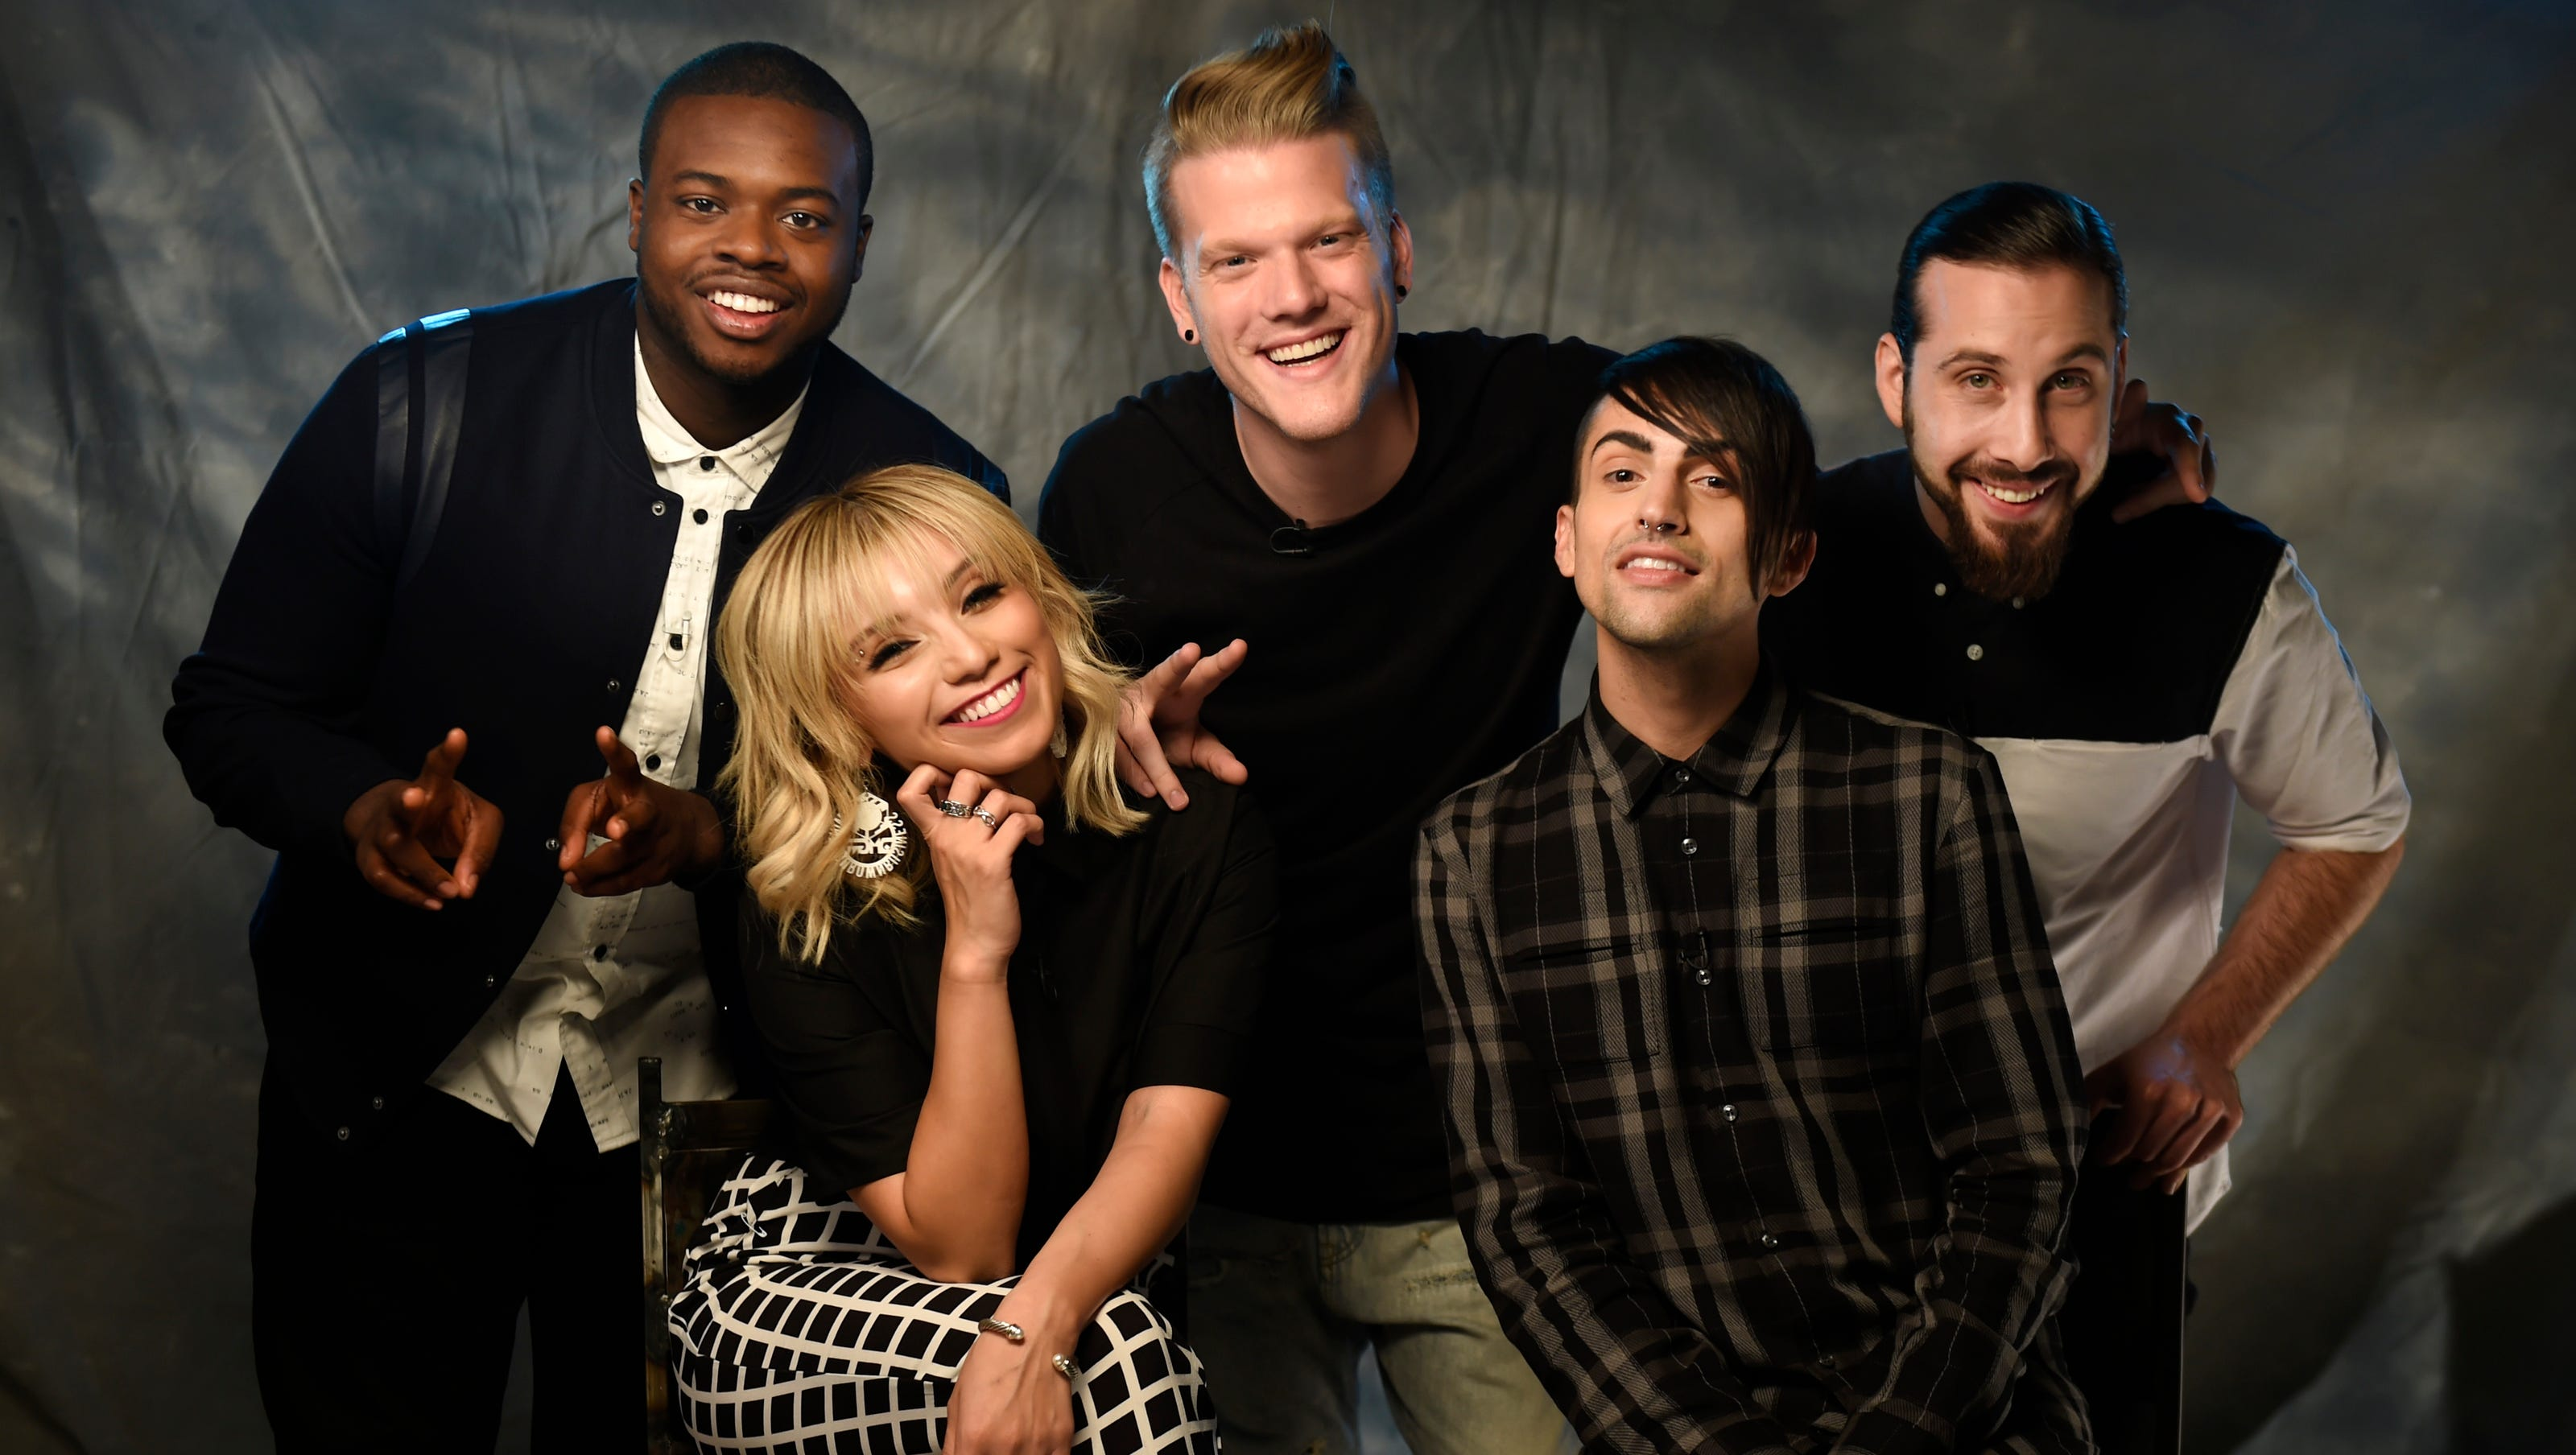 The Pentatonix S Cover Of Hallelujah Will Leave You Speechless